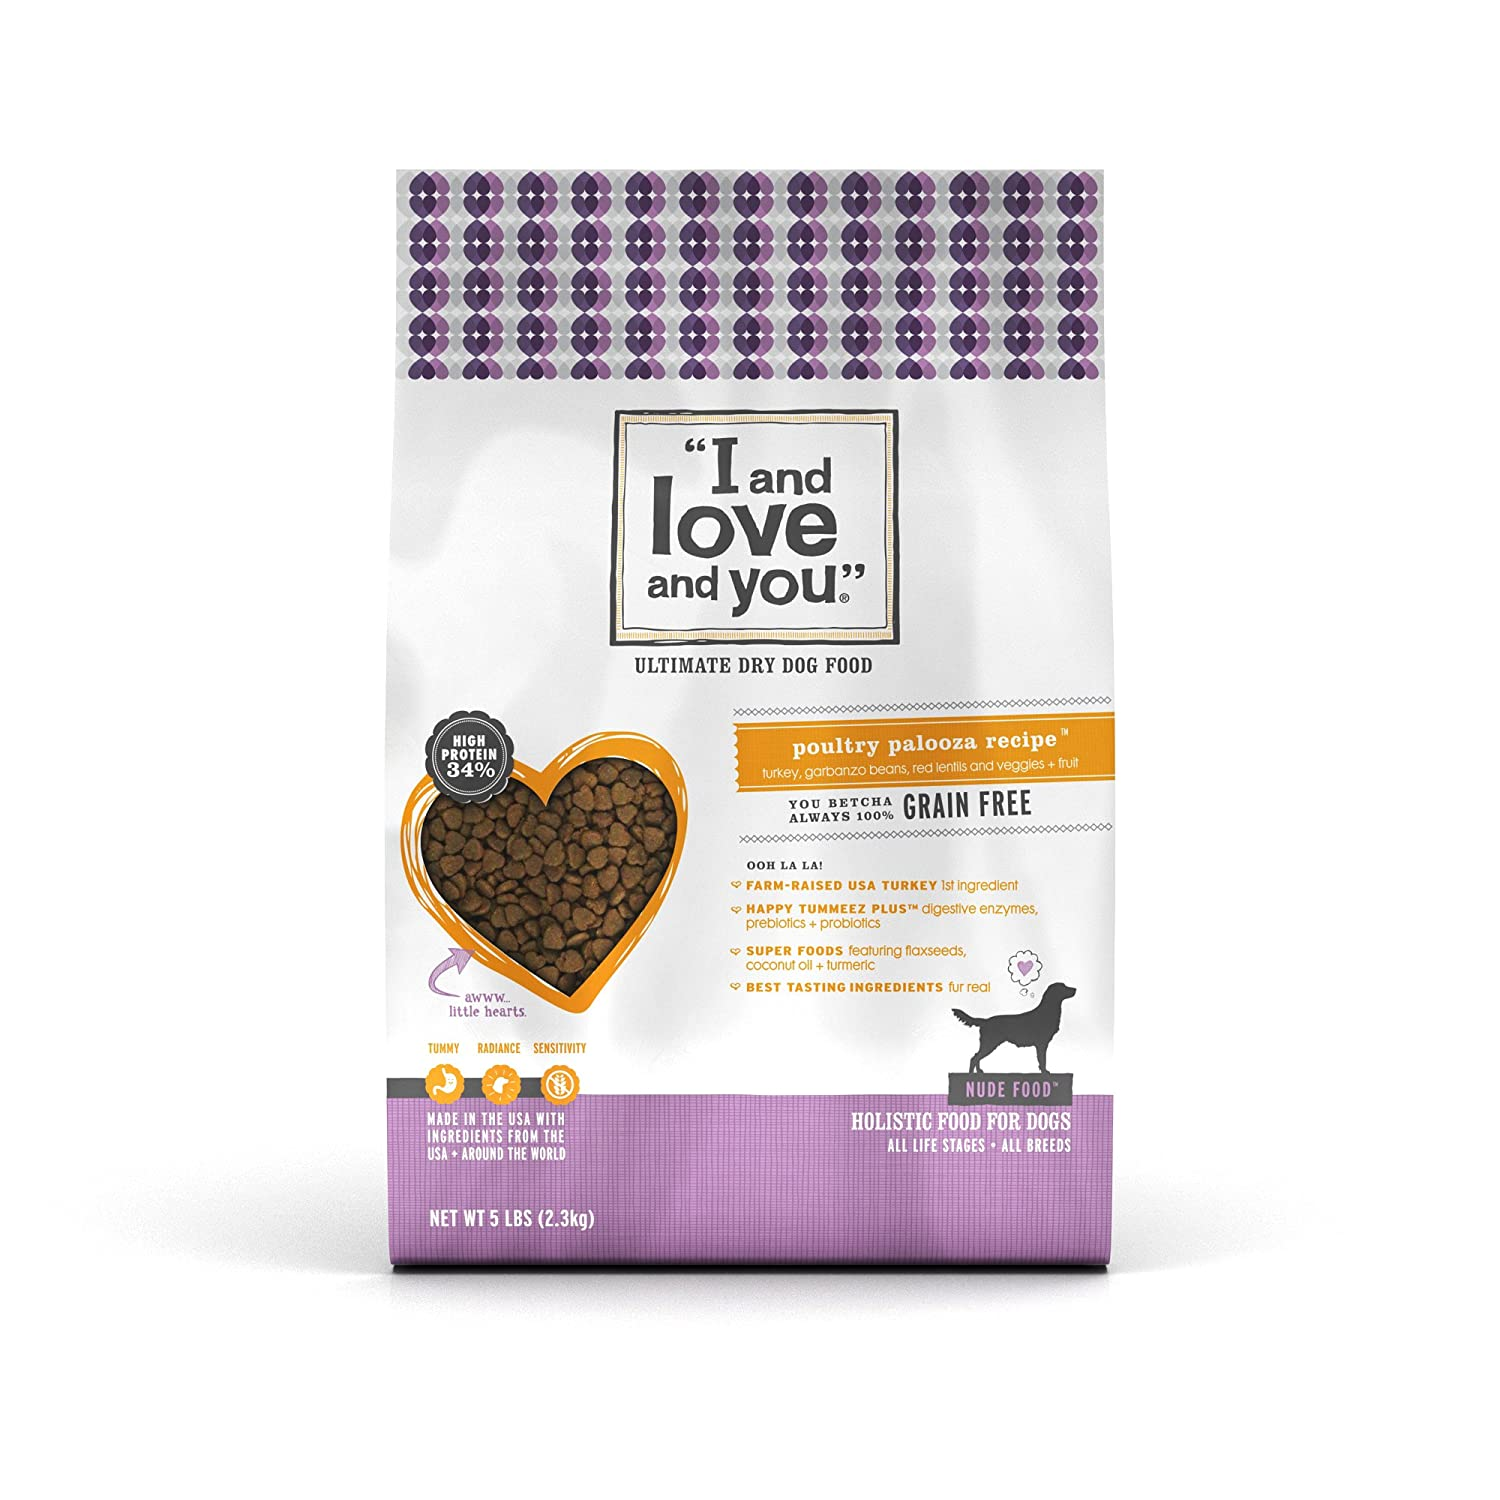 """I and love and you"" Nude Food Poultry Palooza Grain Free Dry Dog Food, 5 LB"